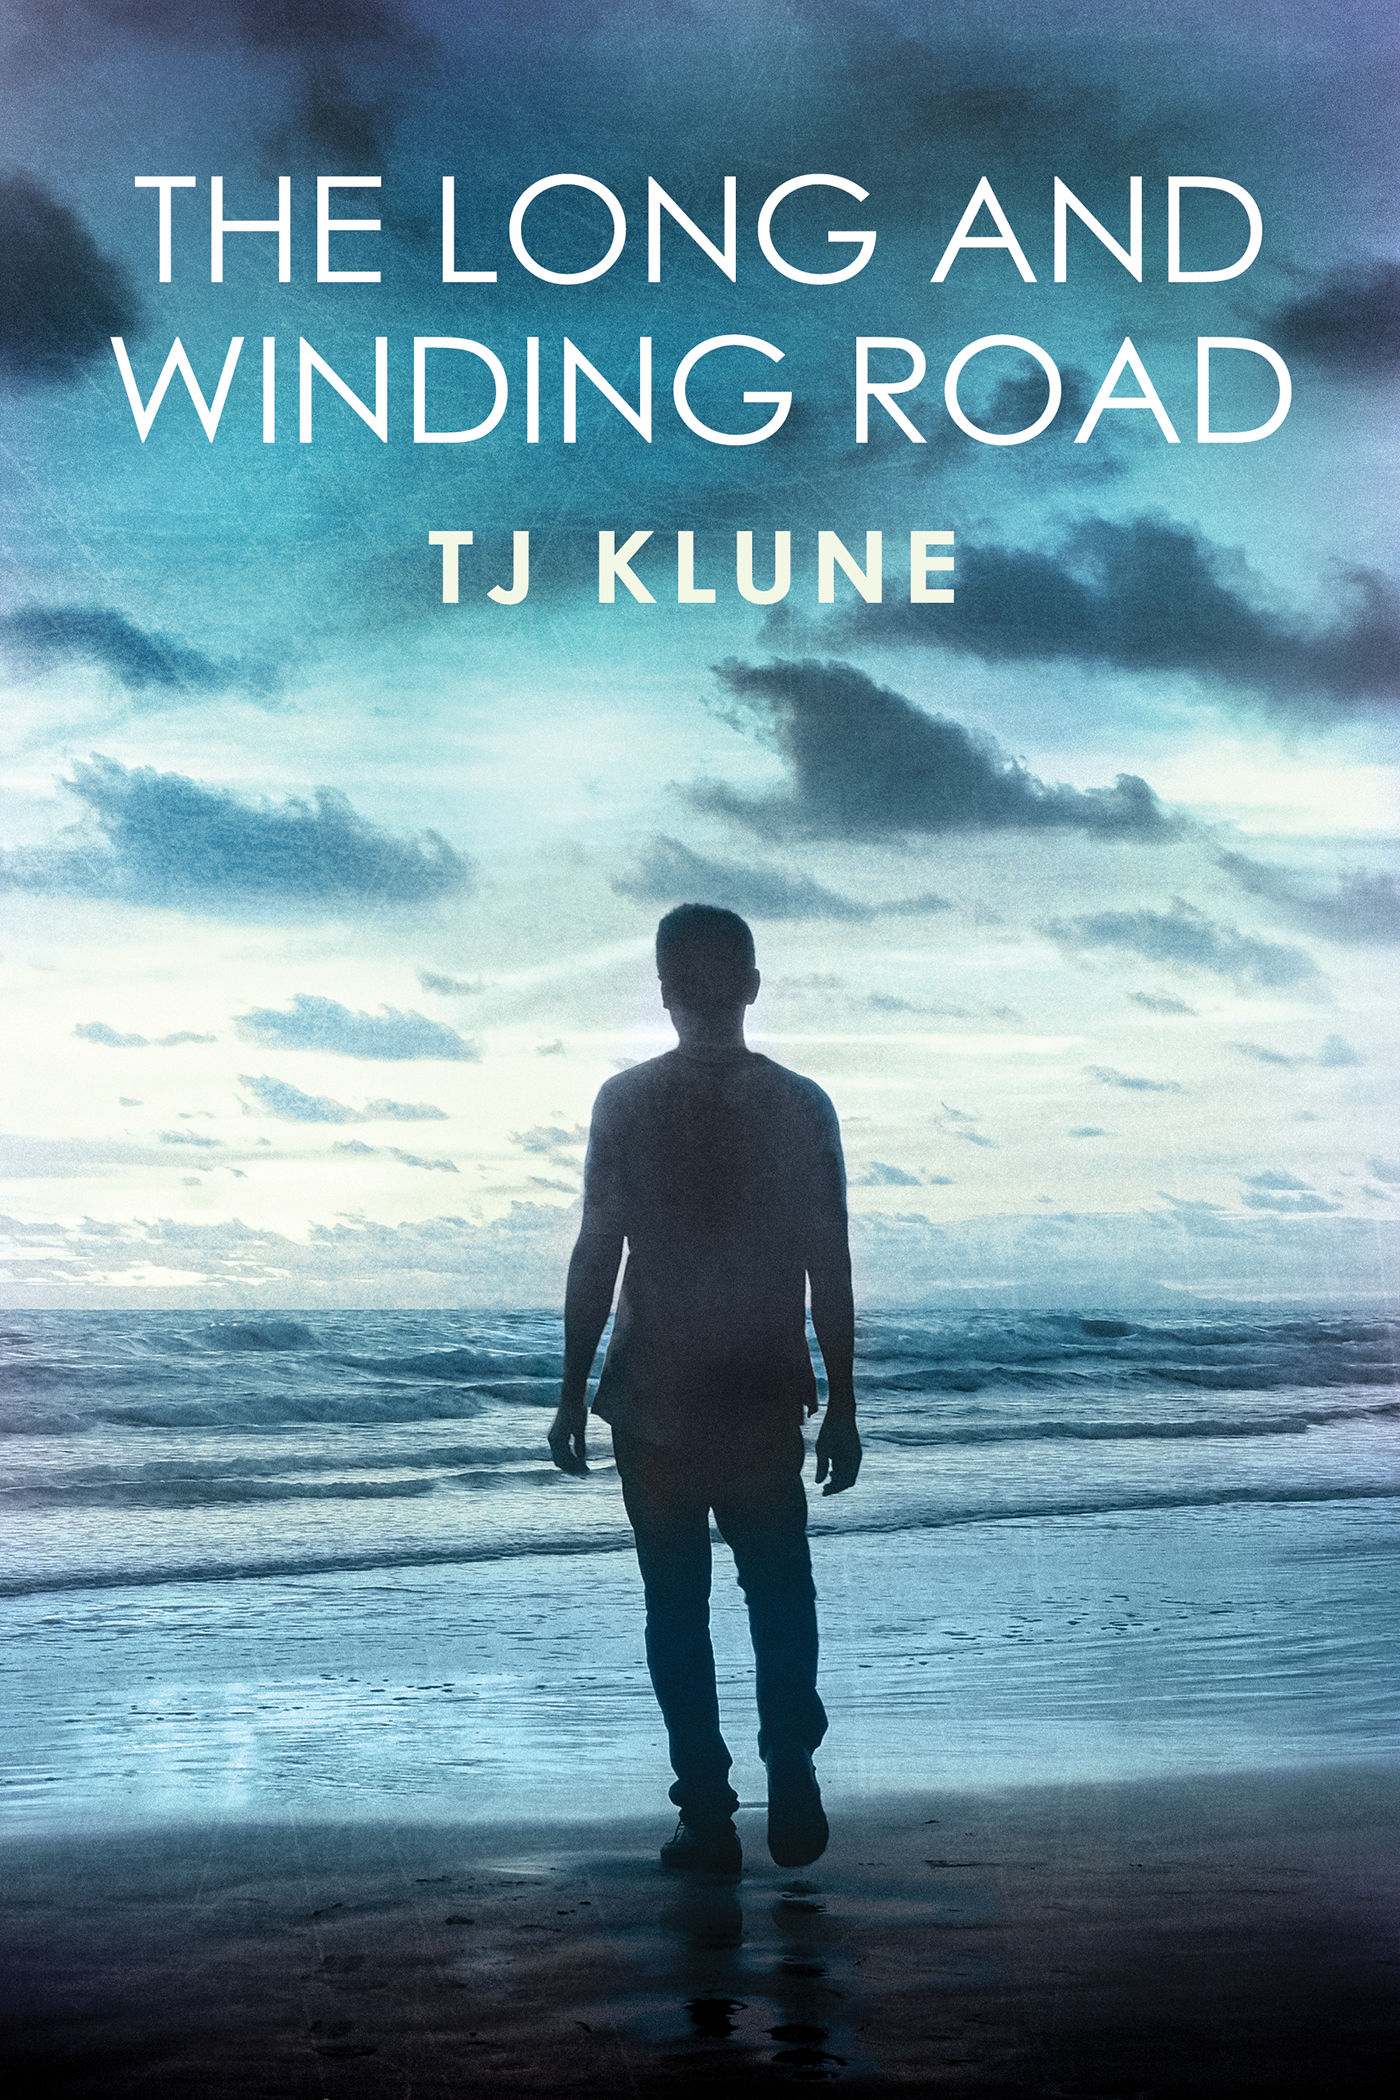 Review: The Long and Winding Road by T.J. Klune